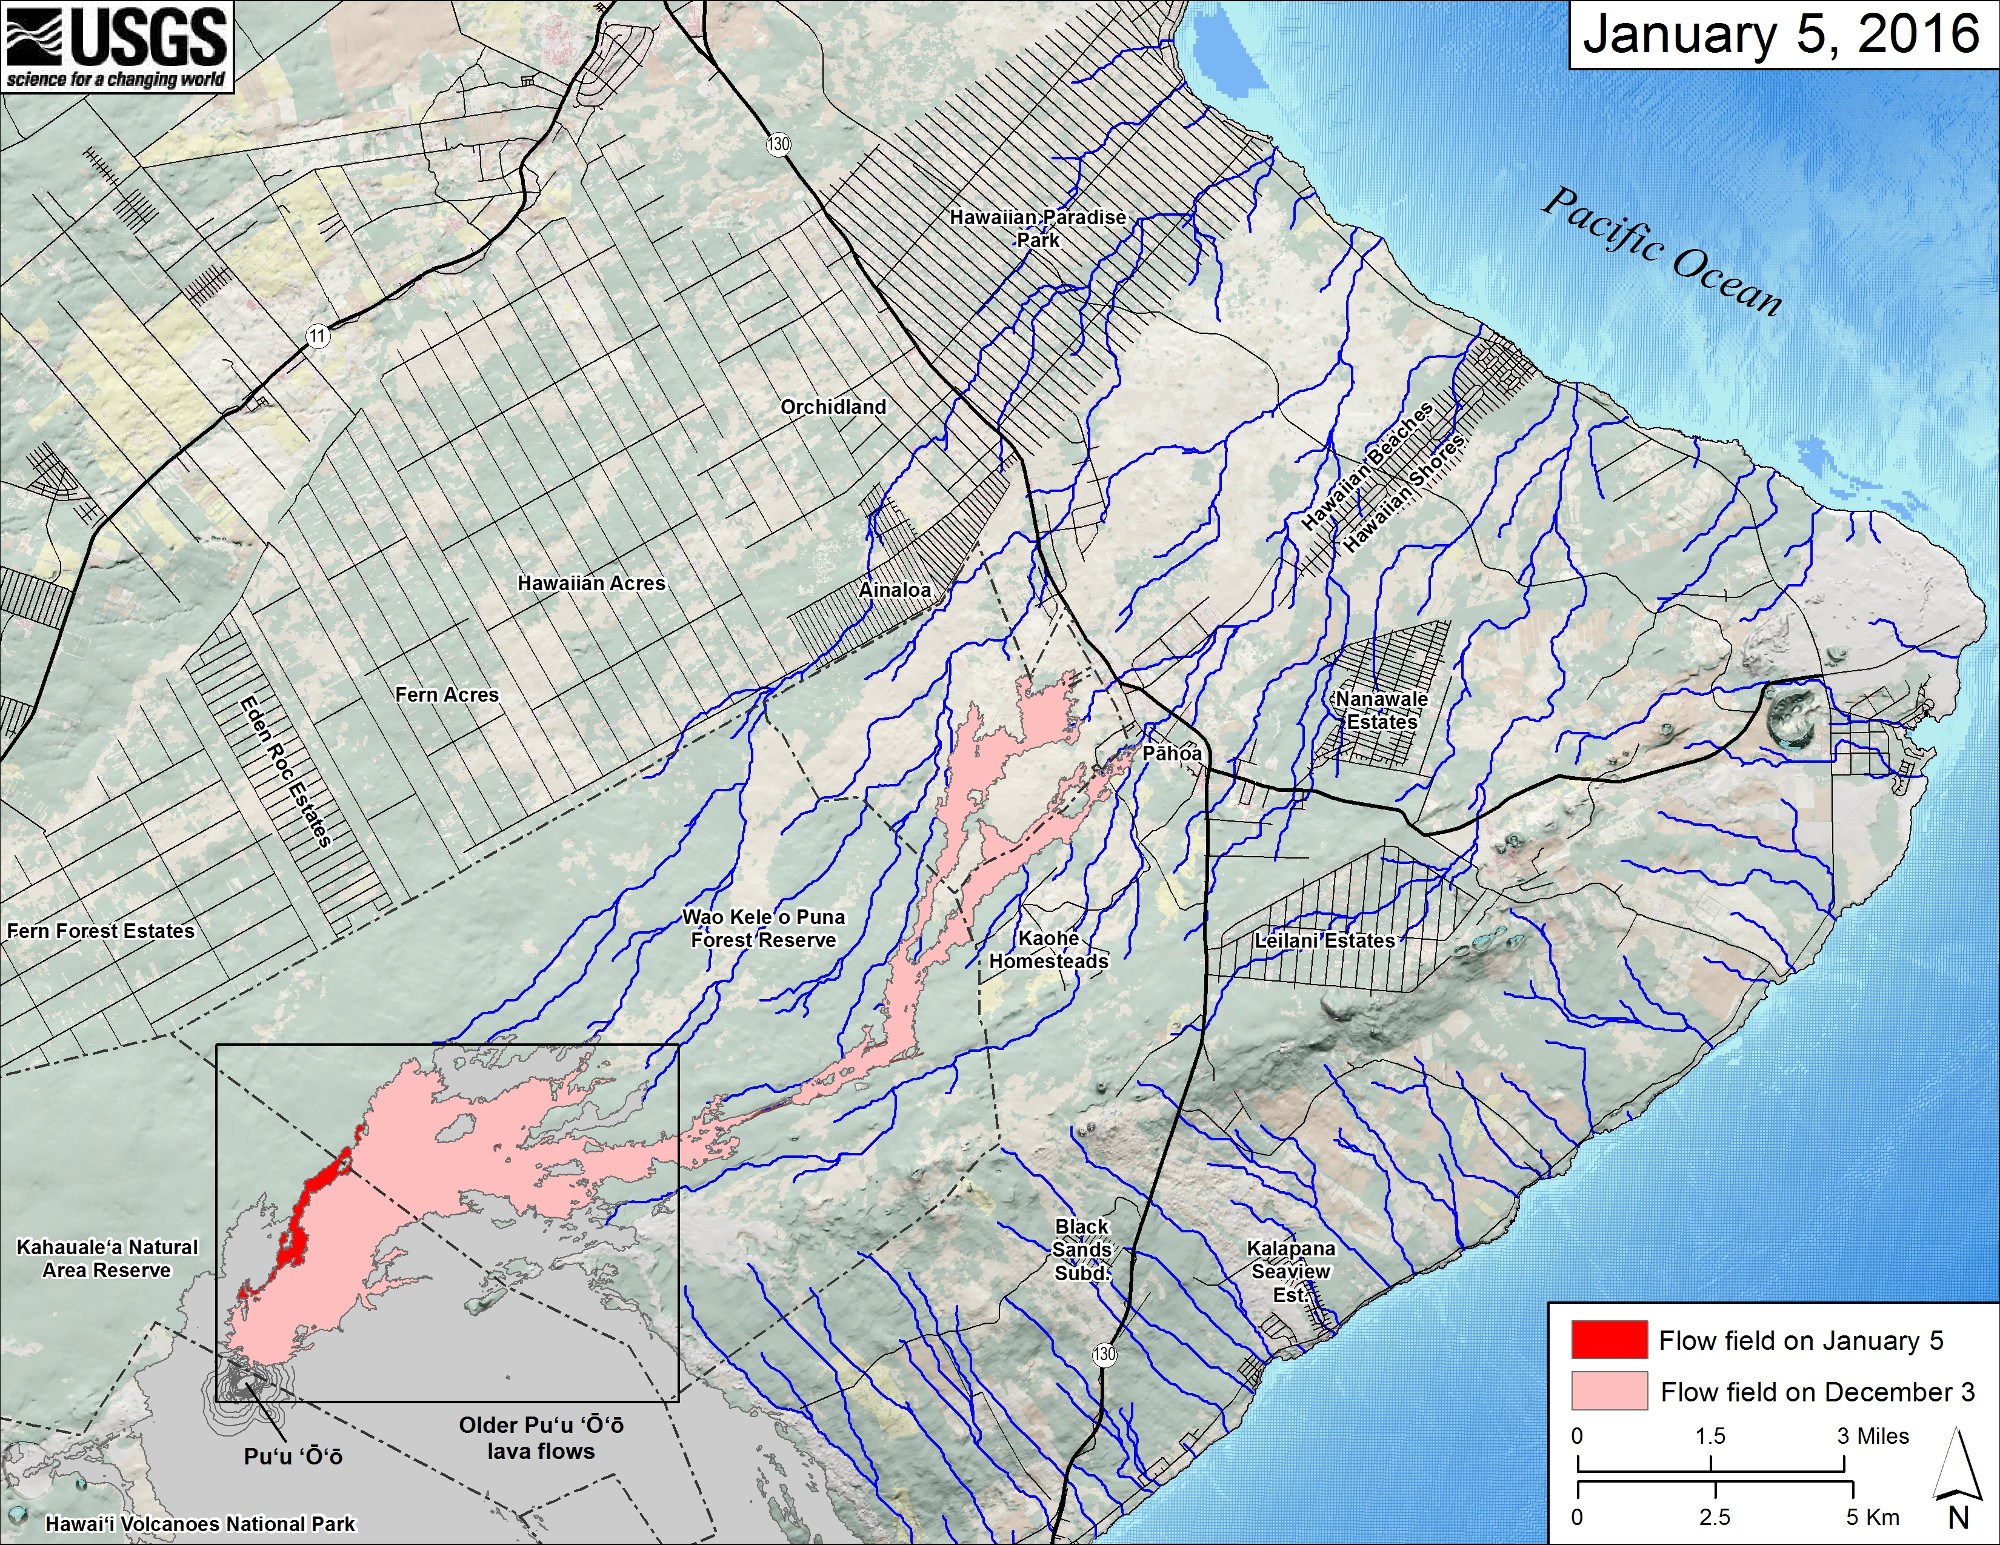 This small-scale map shows Kīlauea's active East Rift Zone lava flow in relation to the eastern part of the Island of Hawaiʻi. The area of the flow field on December 3 is shown in pink, while widening and advancement of the flow field as mapped on January 5 is shown in red. The yellow lines show the active lava tube system. Puʻu ʻŌʻō lava flows erupted prior to June 27, 2014, are shown in gray. The black box shows the extent of the accompanying large scale map. The blue lines show steepest-descent paths calculated from a 1983 digital elevation model.